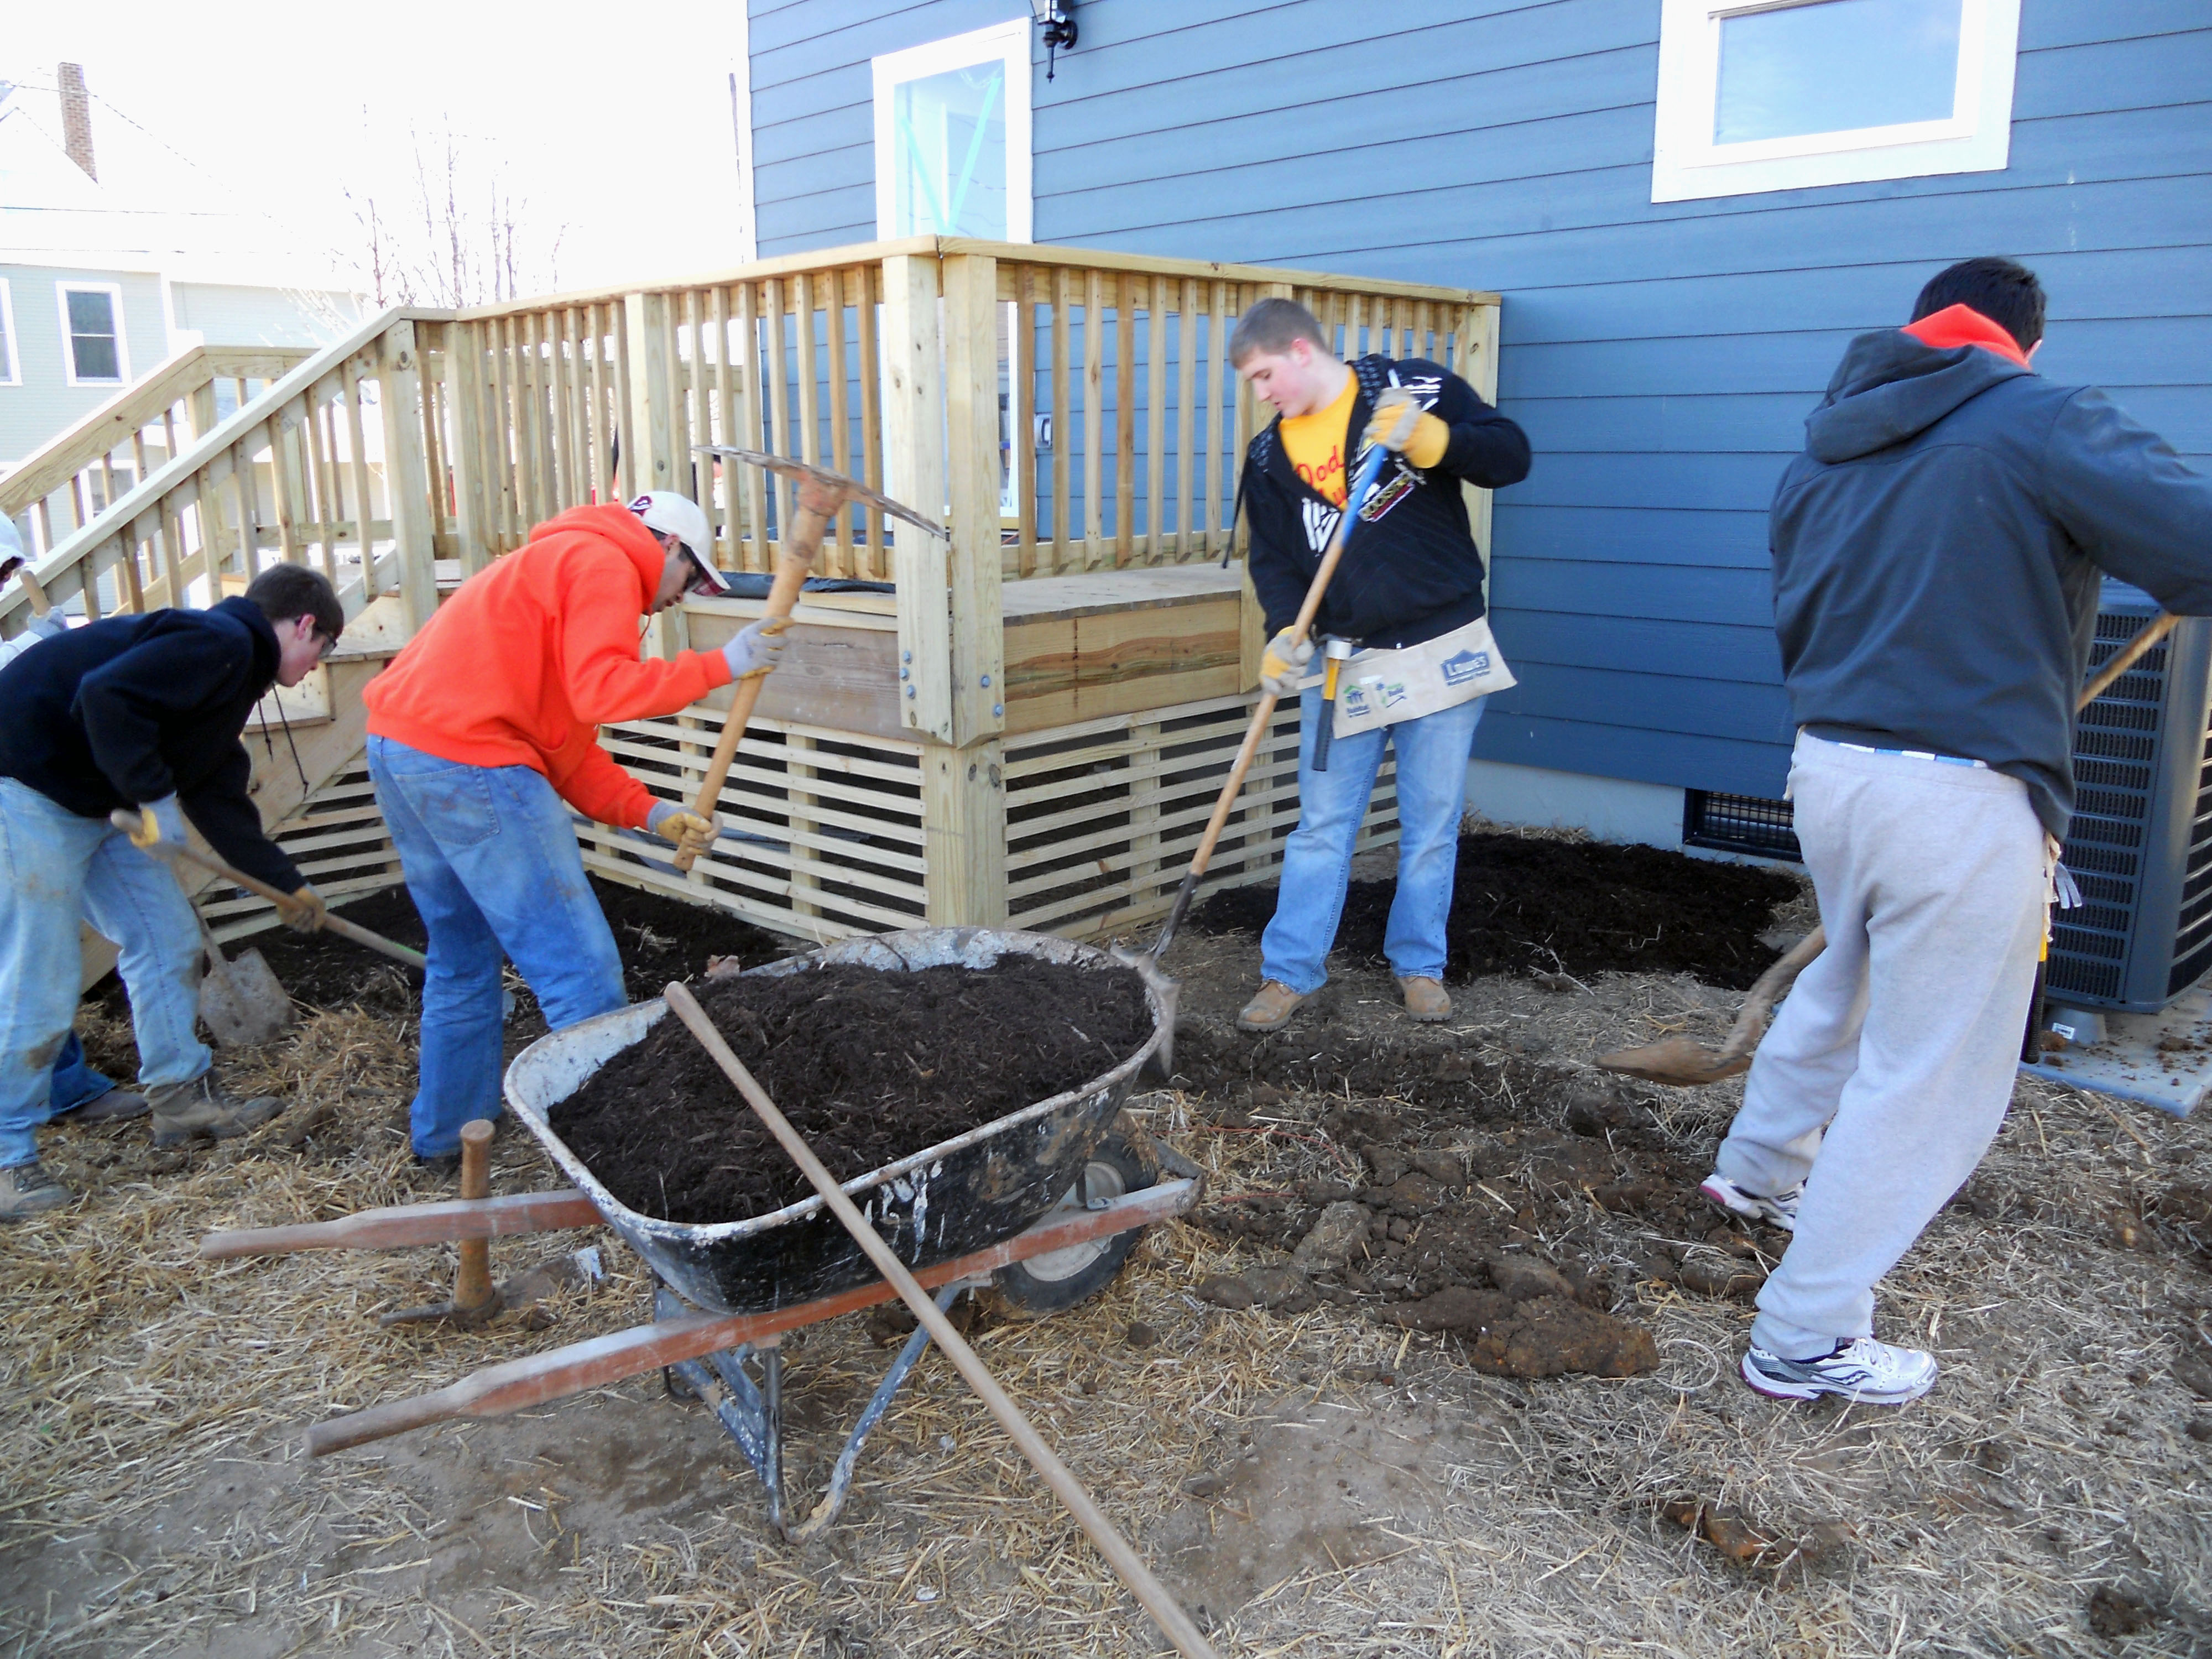 Students landscaping in the garden of a Habitat for Humanity house